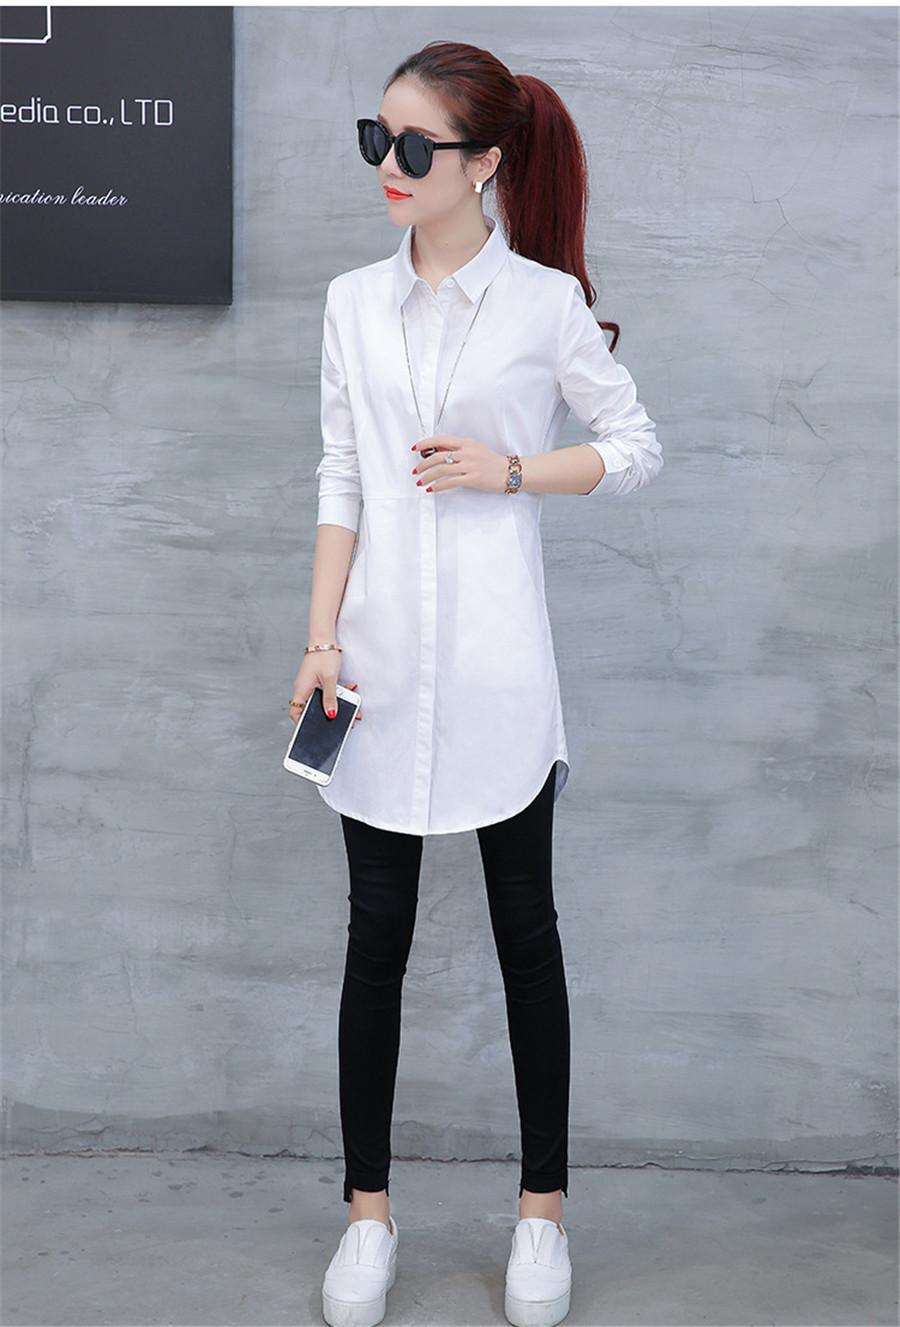 Autumn blouse shirt for woman Women Long White Shirts All-match Good Quality blusa feminina Lady Casual Cotton Blouse & Tops